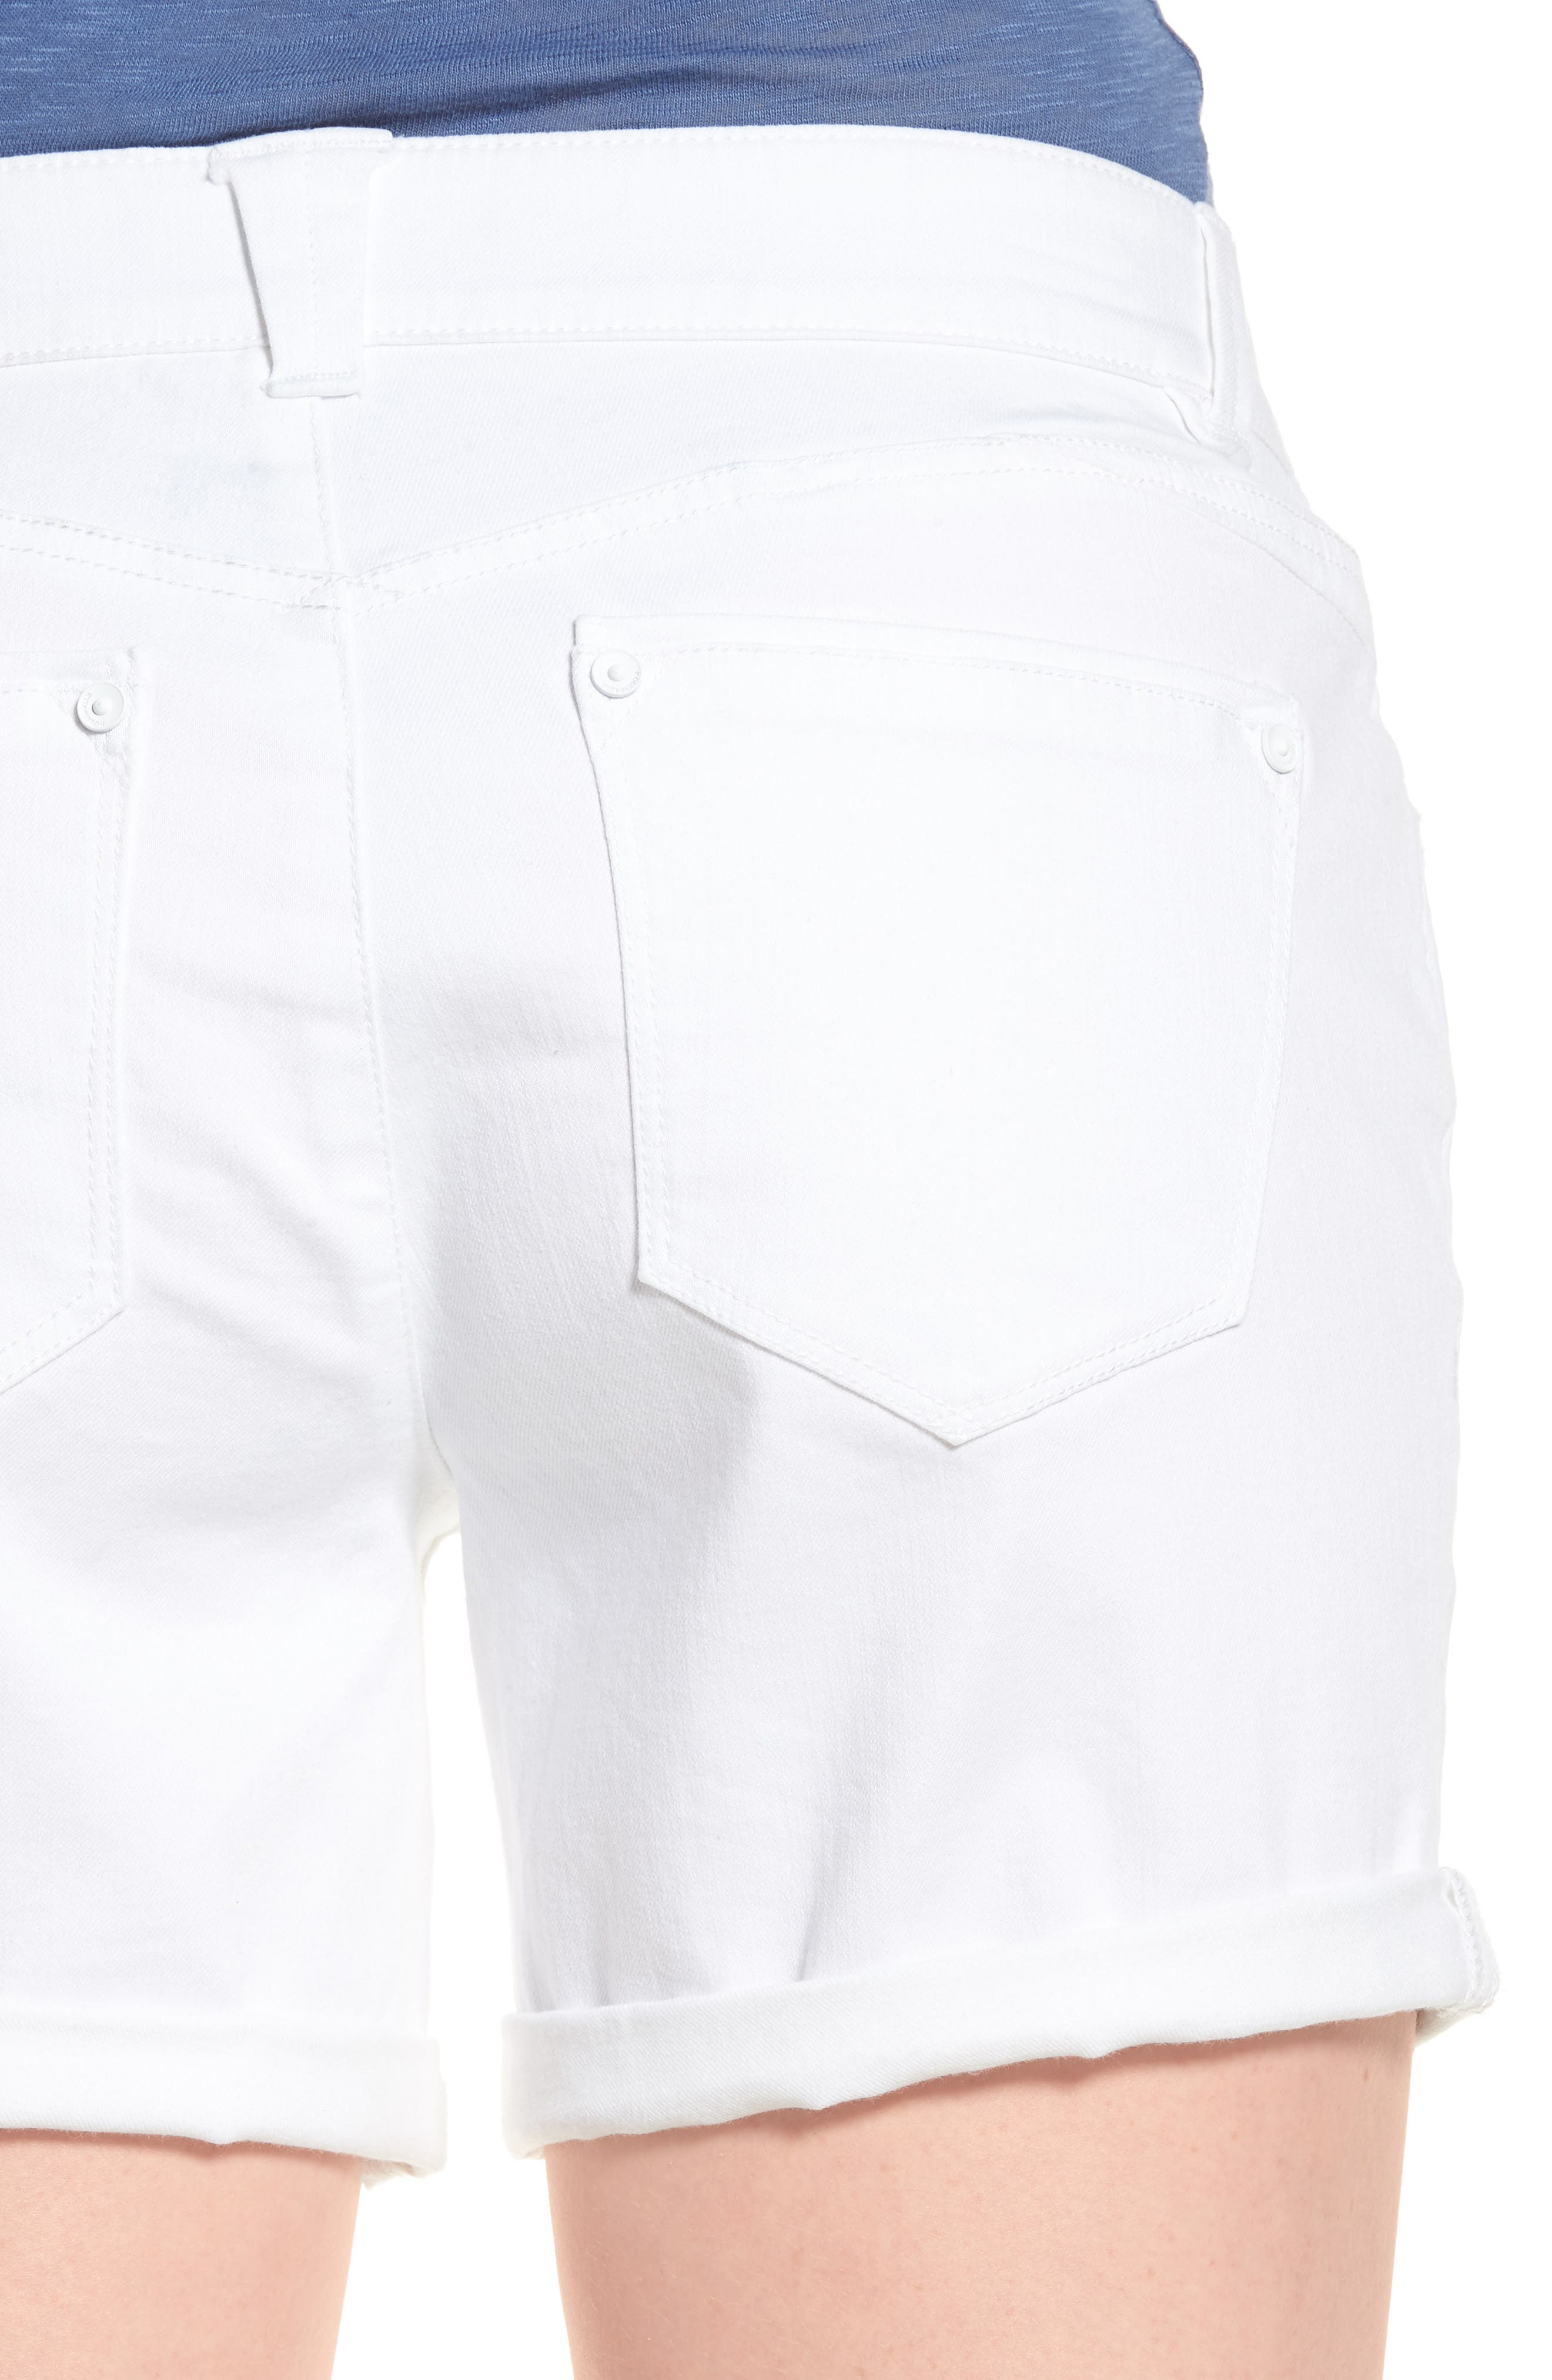 Ab-solution Cuffed White Shorts,                             Alternate thumbnail 4, color,                             106